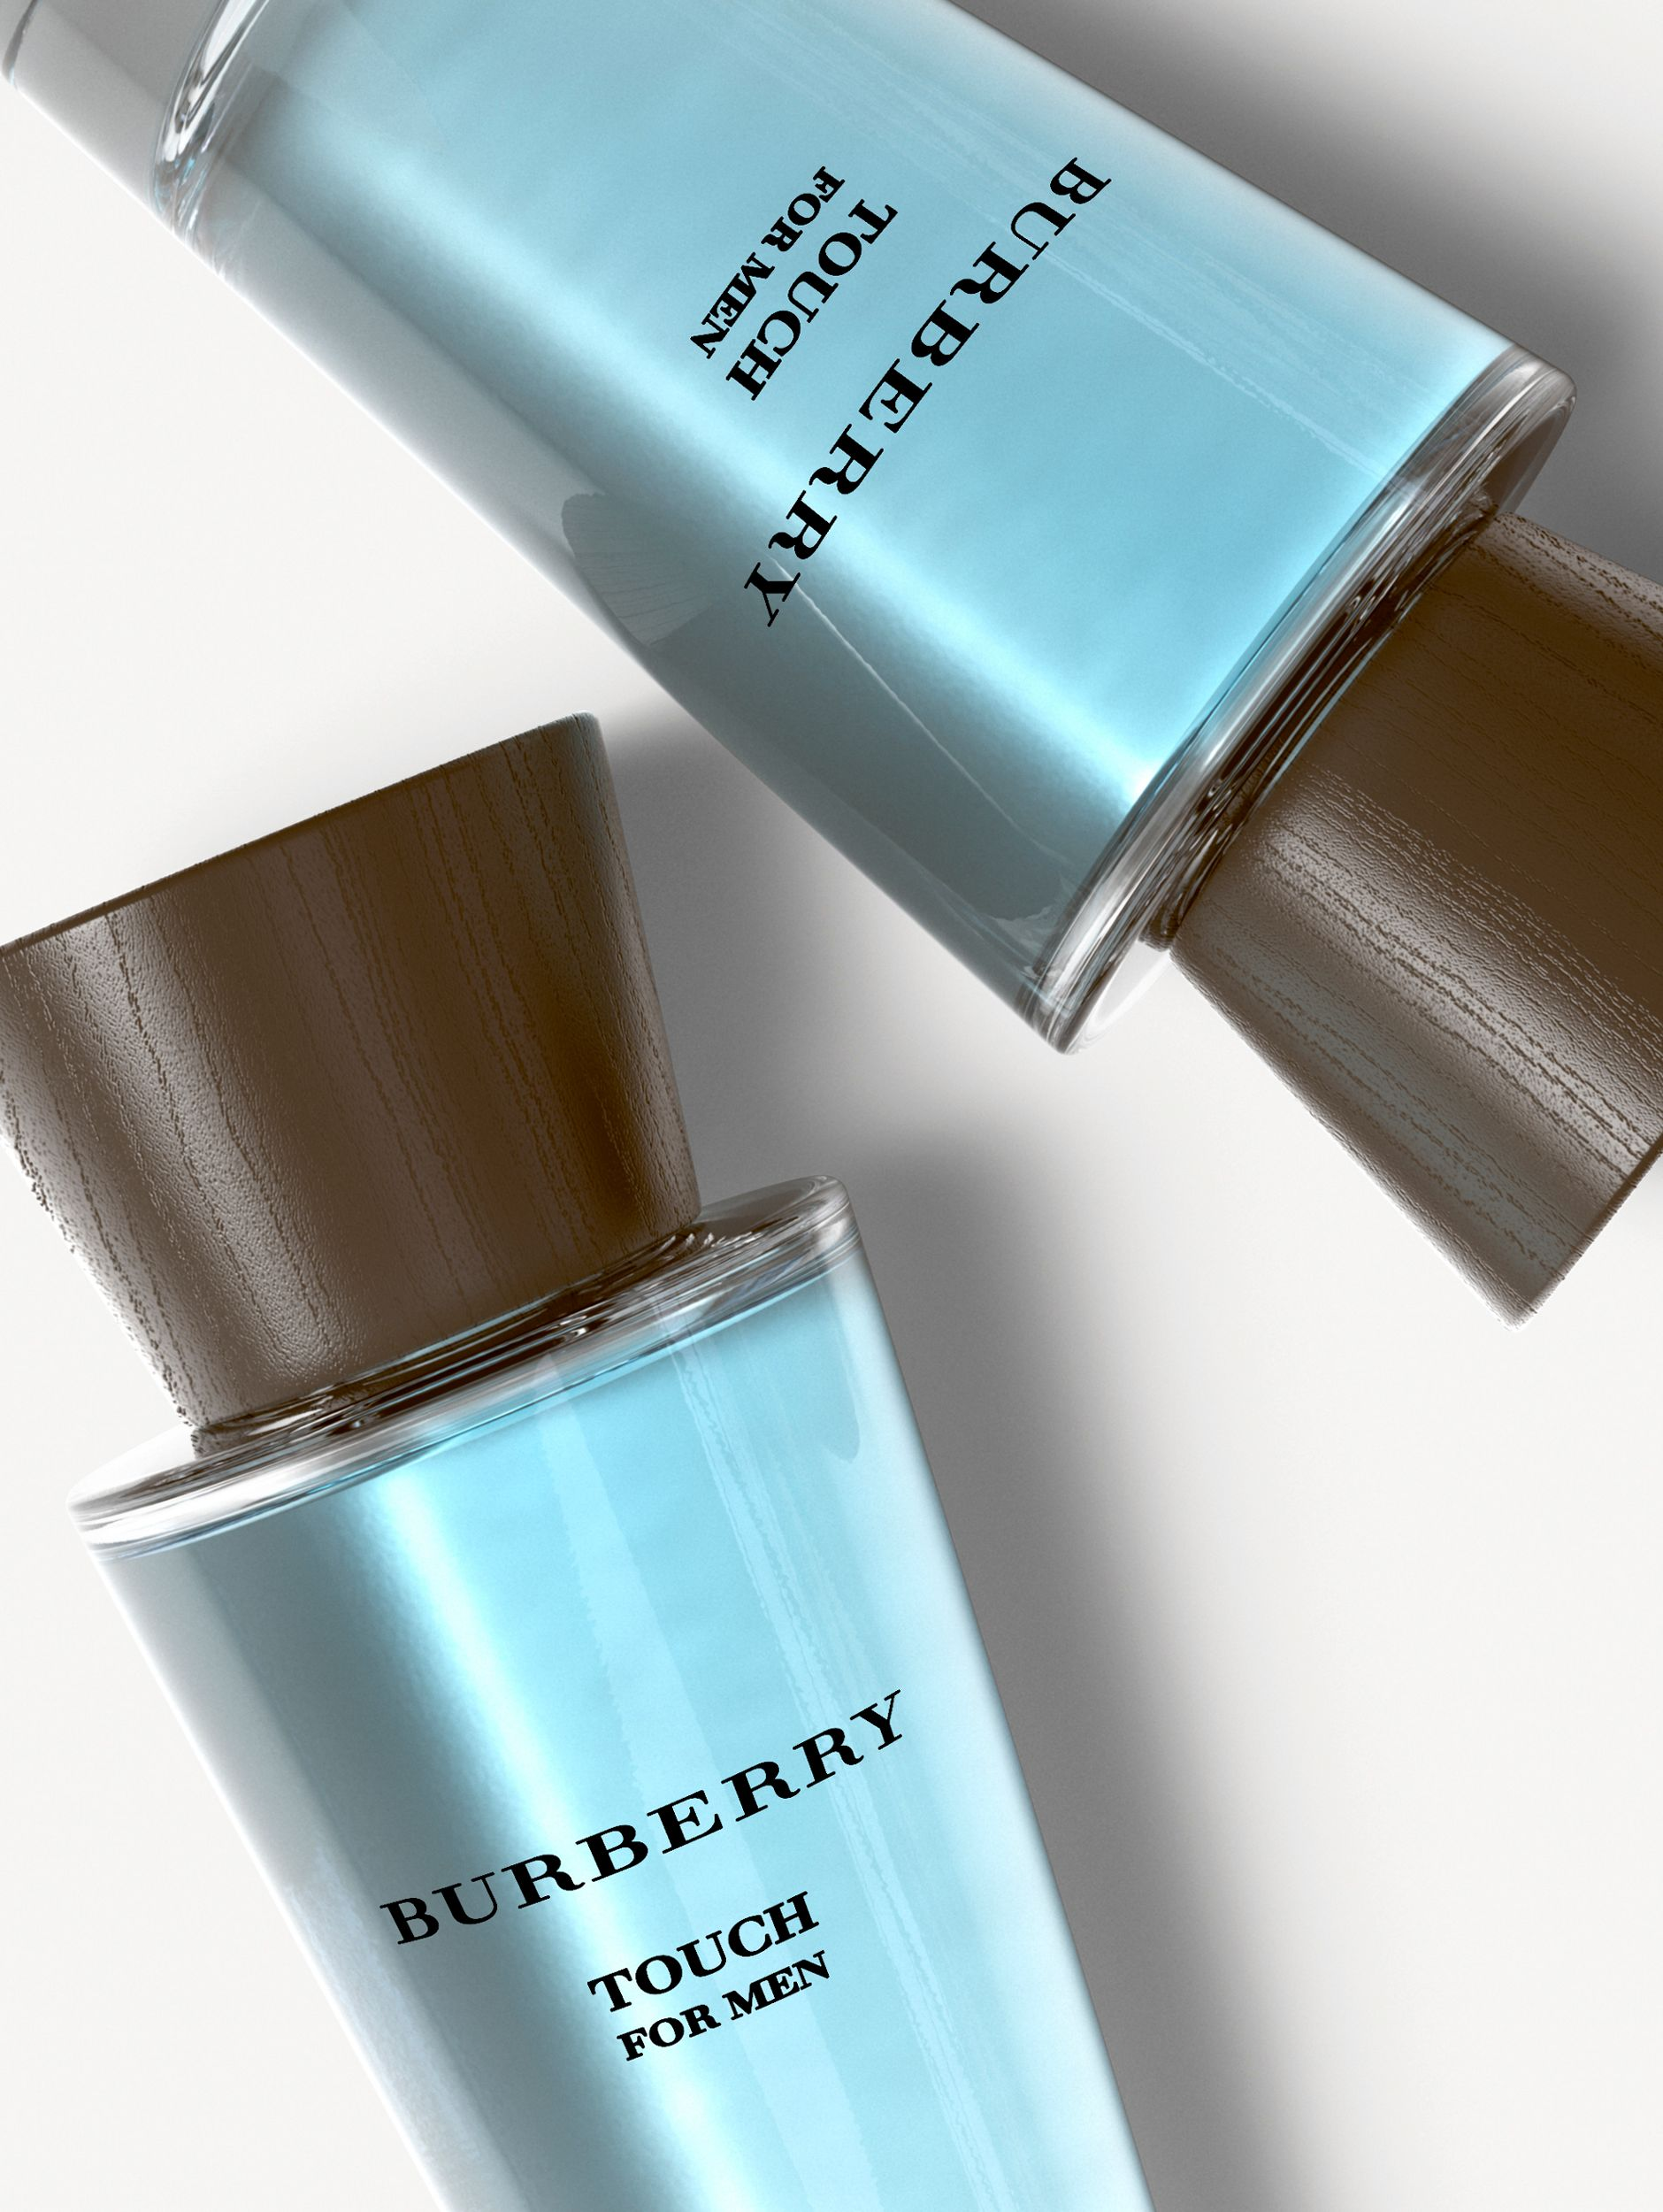 Burberry Touch Eau de Toilette 100ml - Men | Burberry Canada - 2